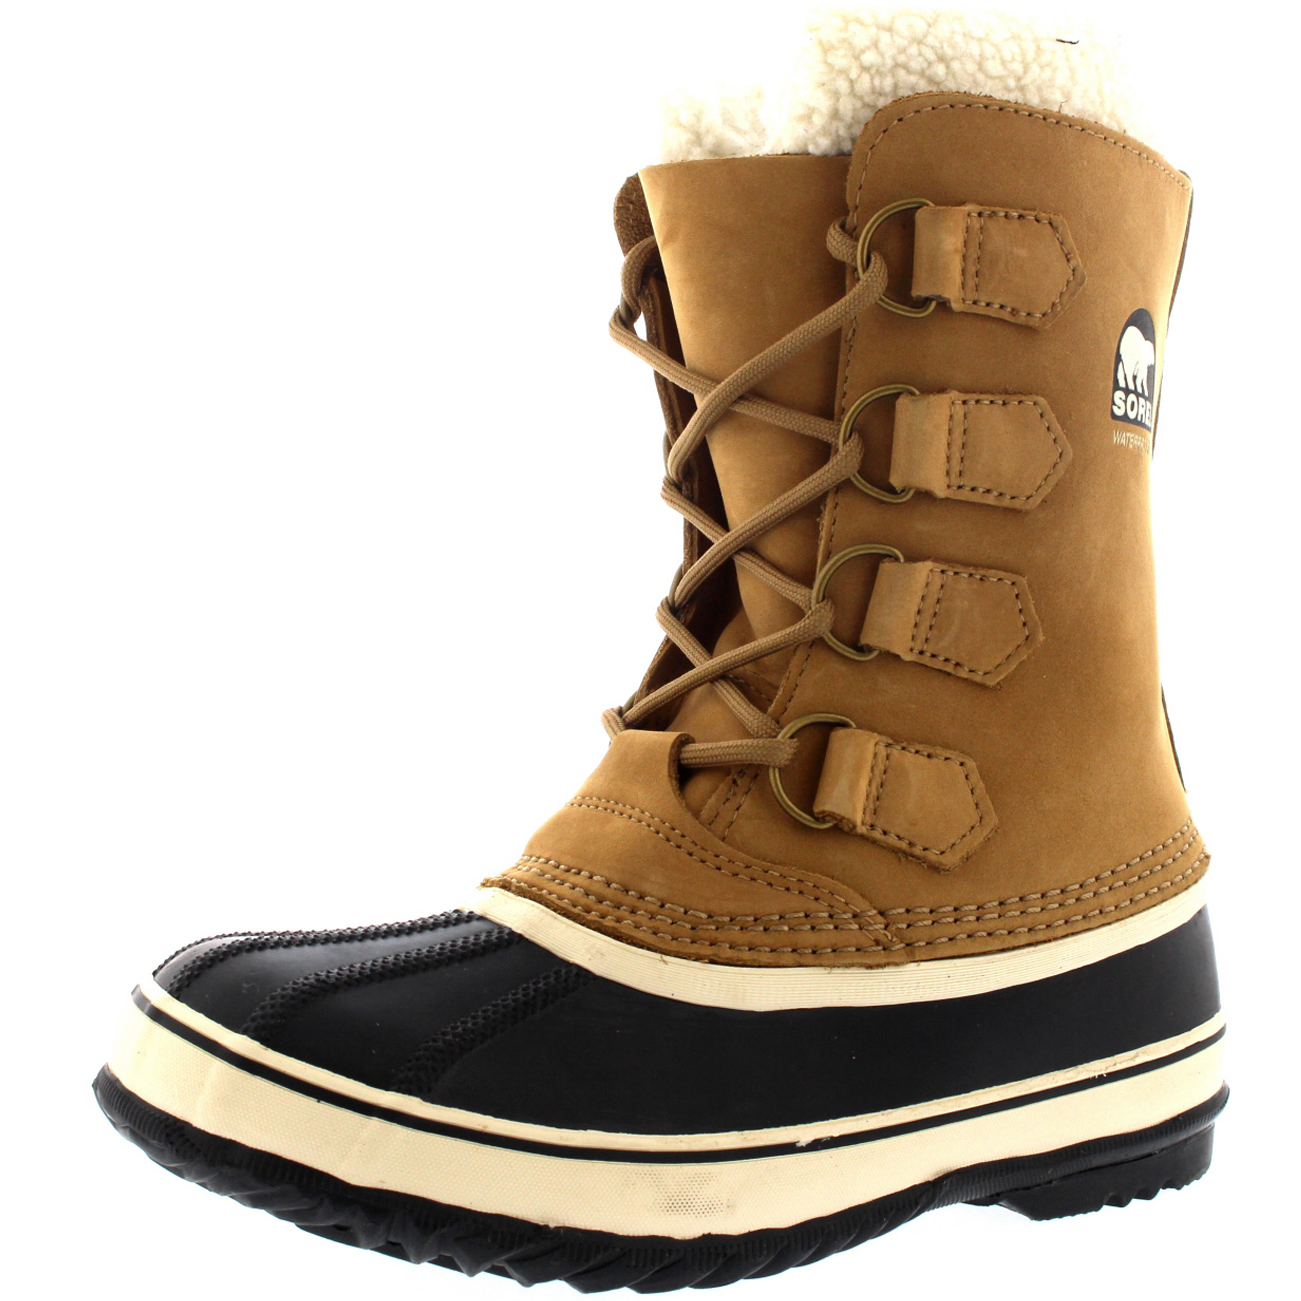 Sorel Mid-Calf Snow Boots outlet cost under $60 cheap price discount prices discount fashionable Lt5i9xcq2g